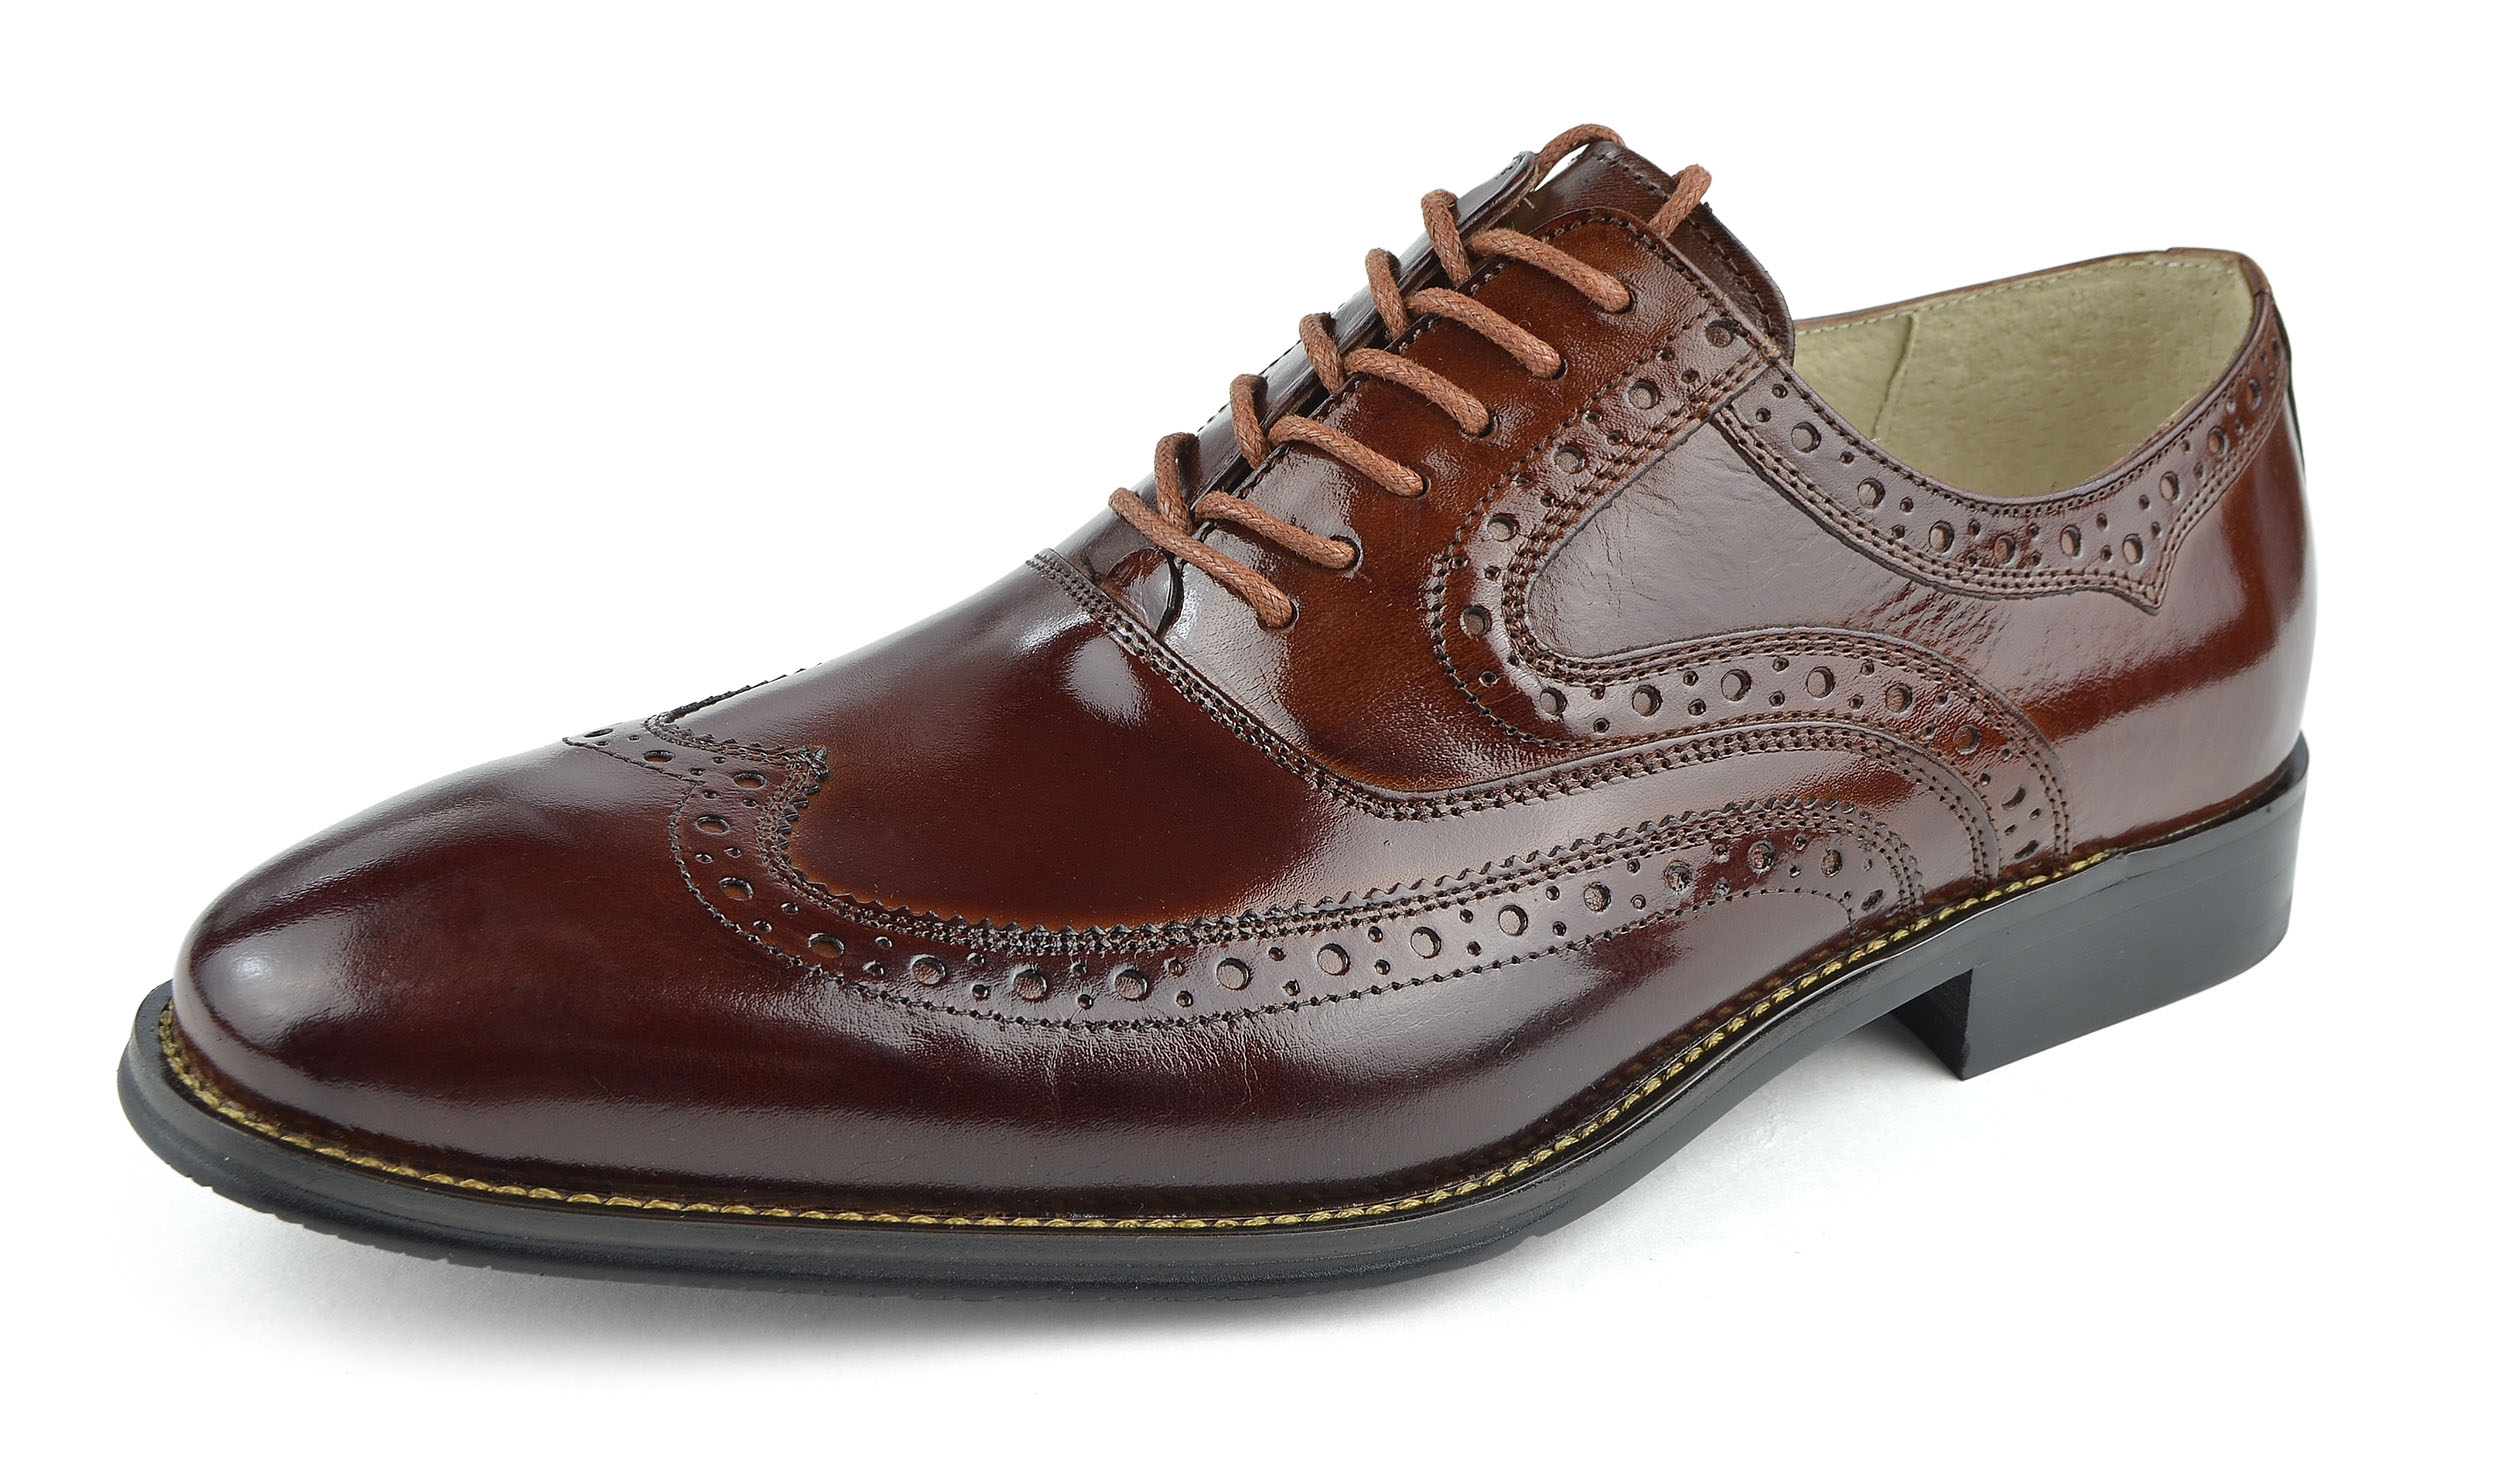 Moda Di Raza - Men's Oxford Lace Dress Shoes Sleek Trendy Light Shine - Cognac/10